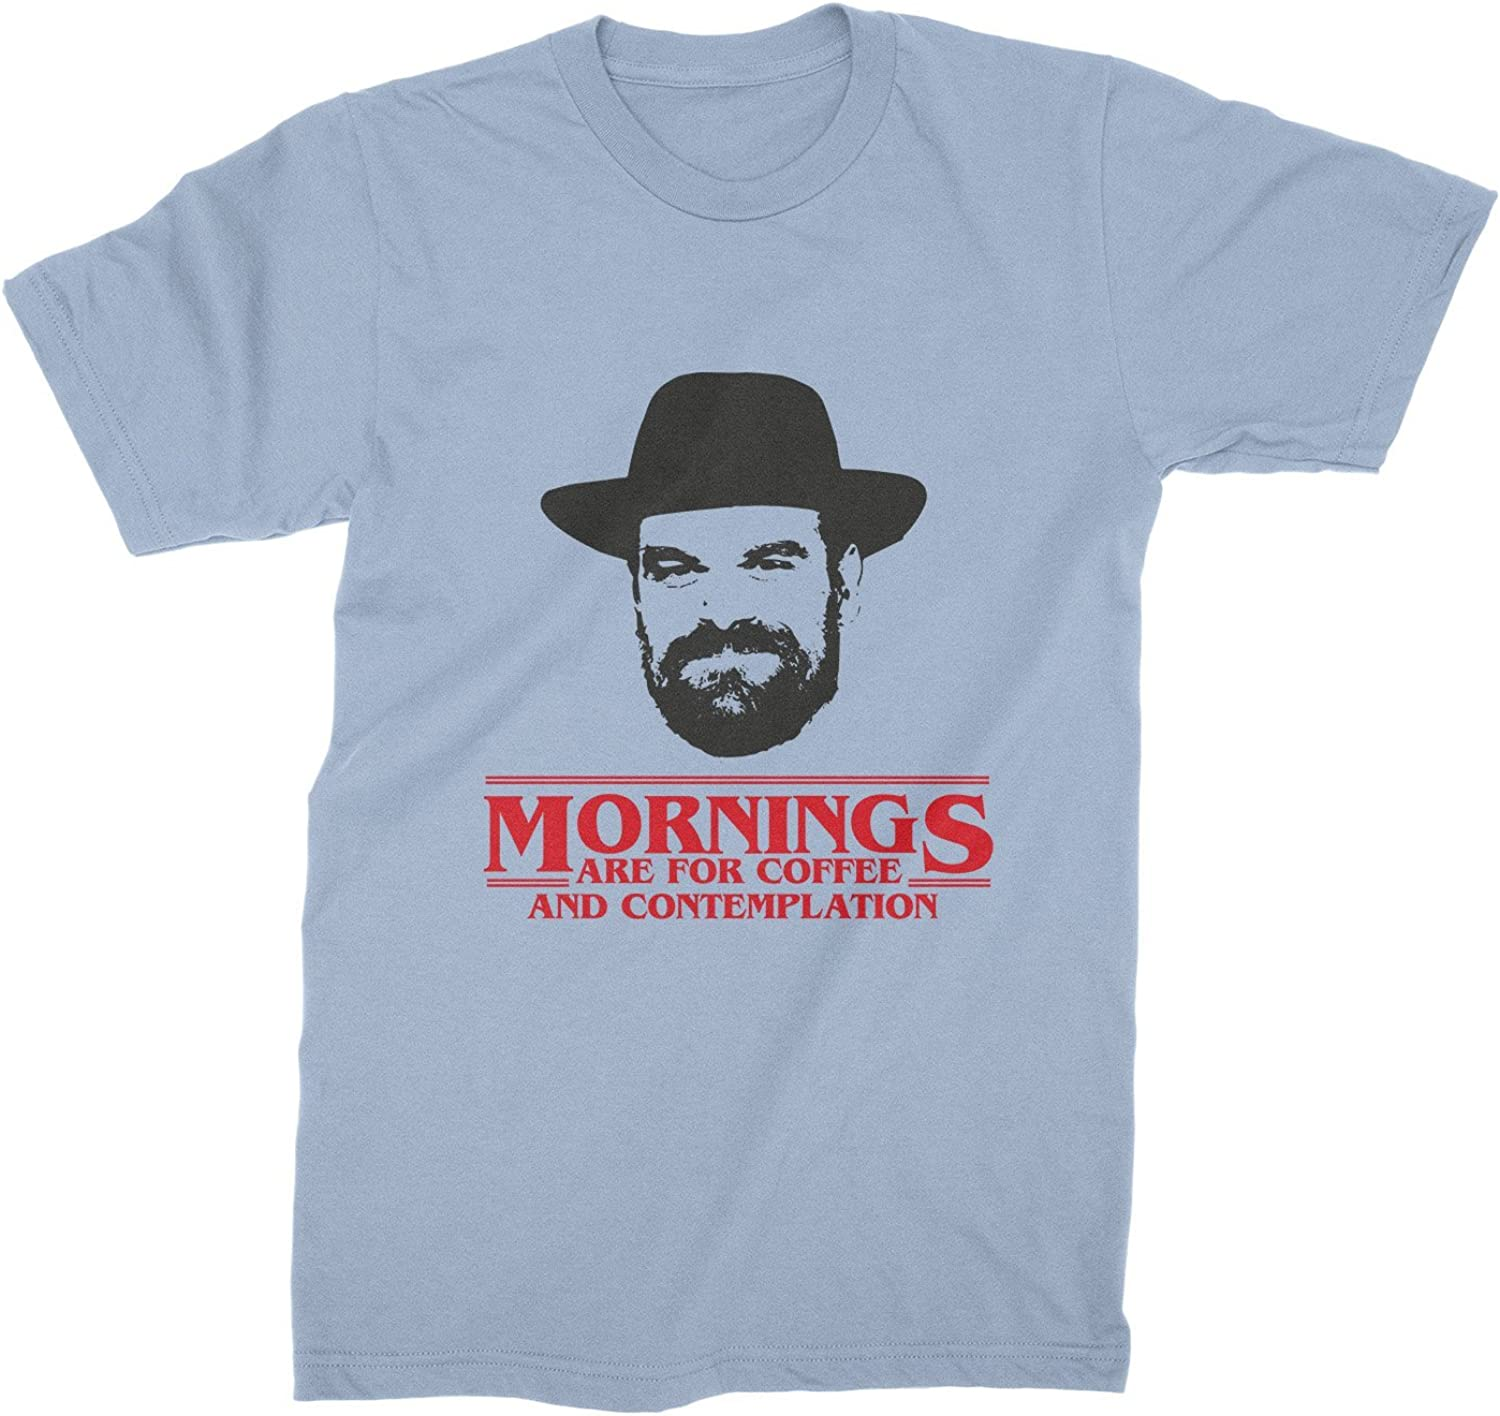 Mornings Are For Coffee And Contemplation Shirt Chief Hopper Quote T Shirt Jim Hopper Tee